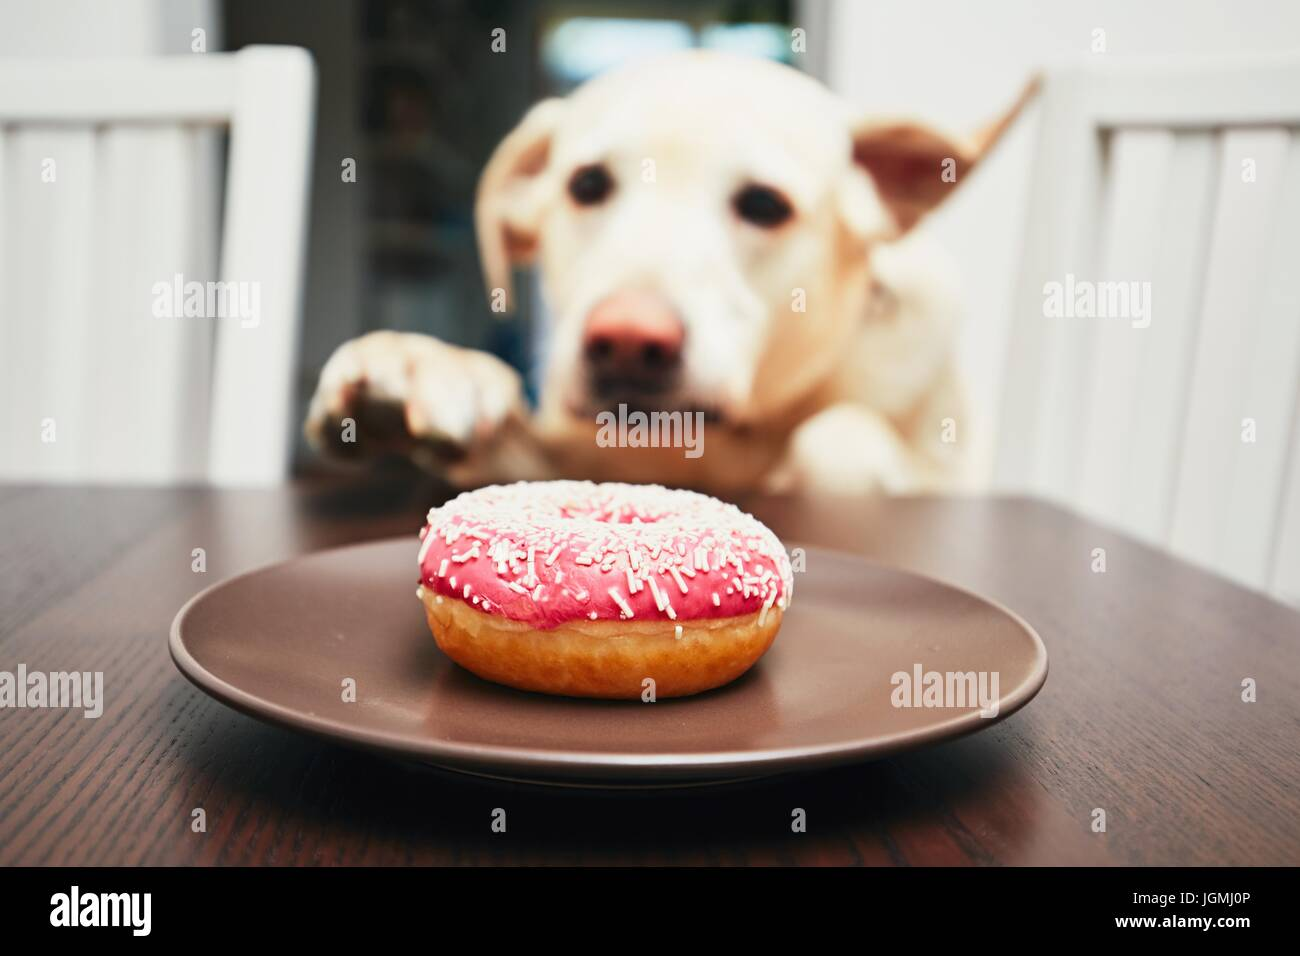 Mischievous dog in home kitchen. Naughty labrador retriever steals the donut from the table. - Stock Image